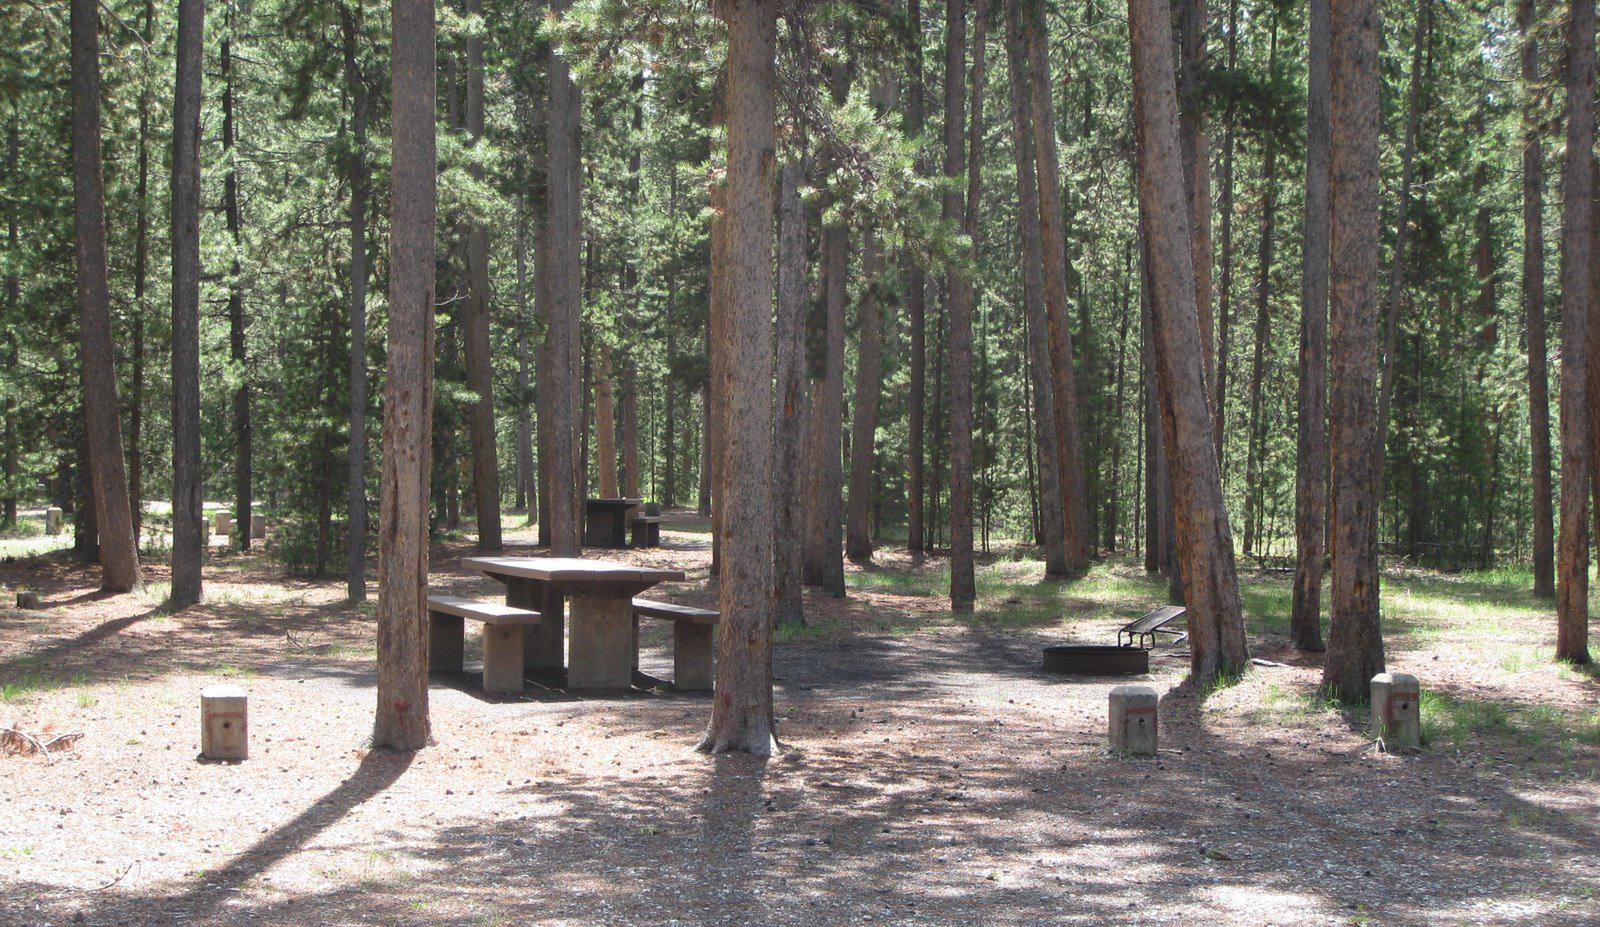 Site B19, surrounded by pine trees, picnic table & fire ringSite B19